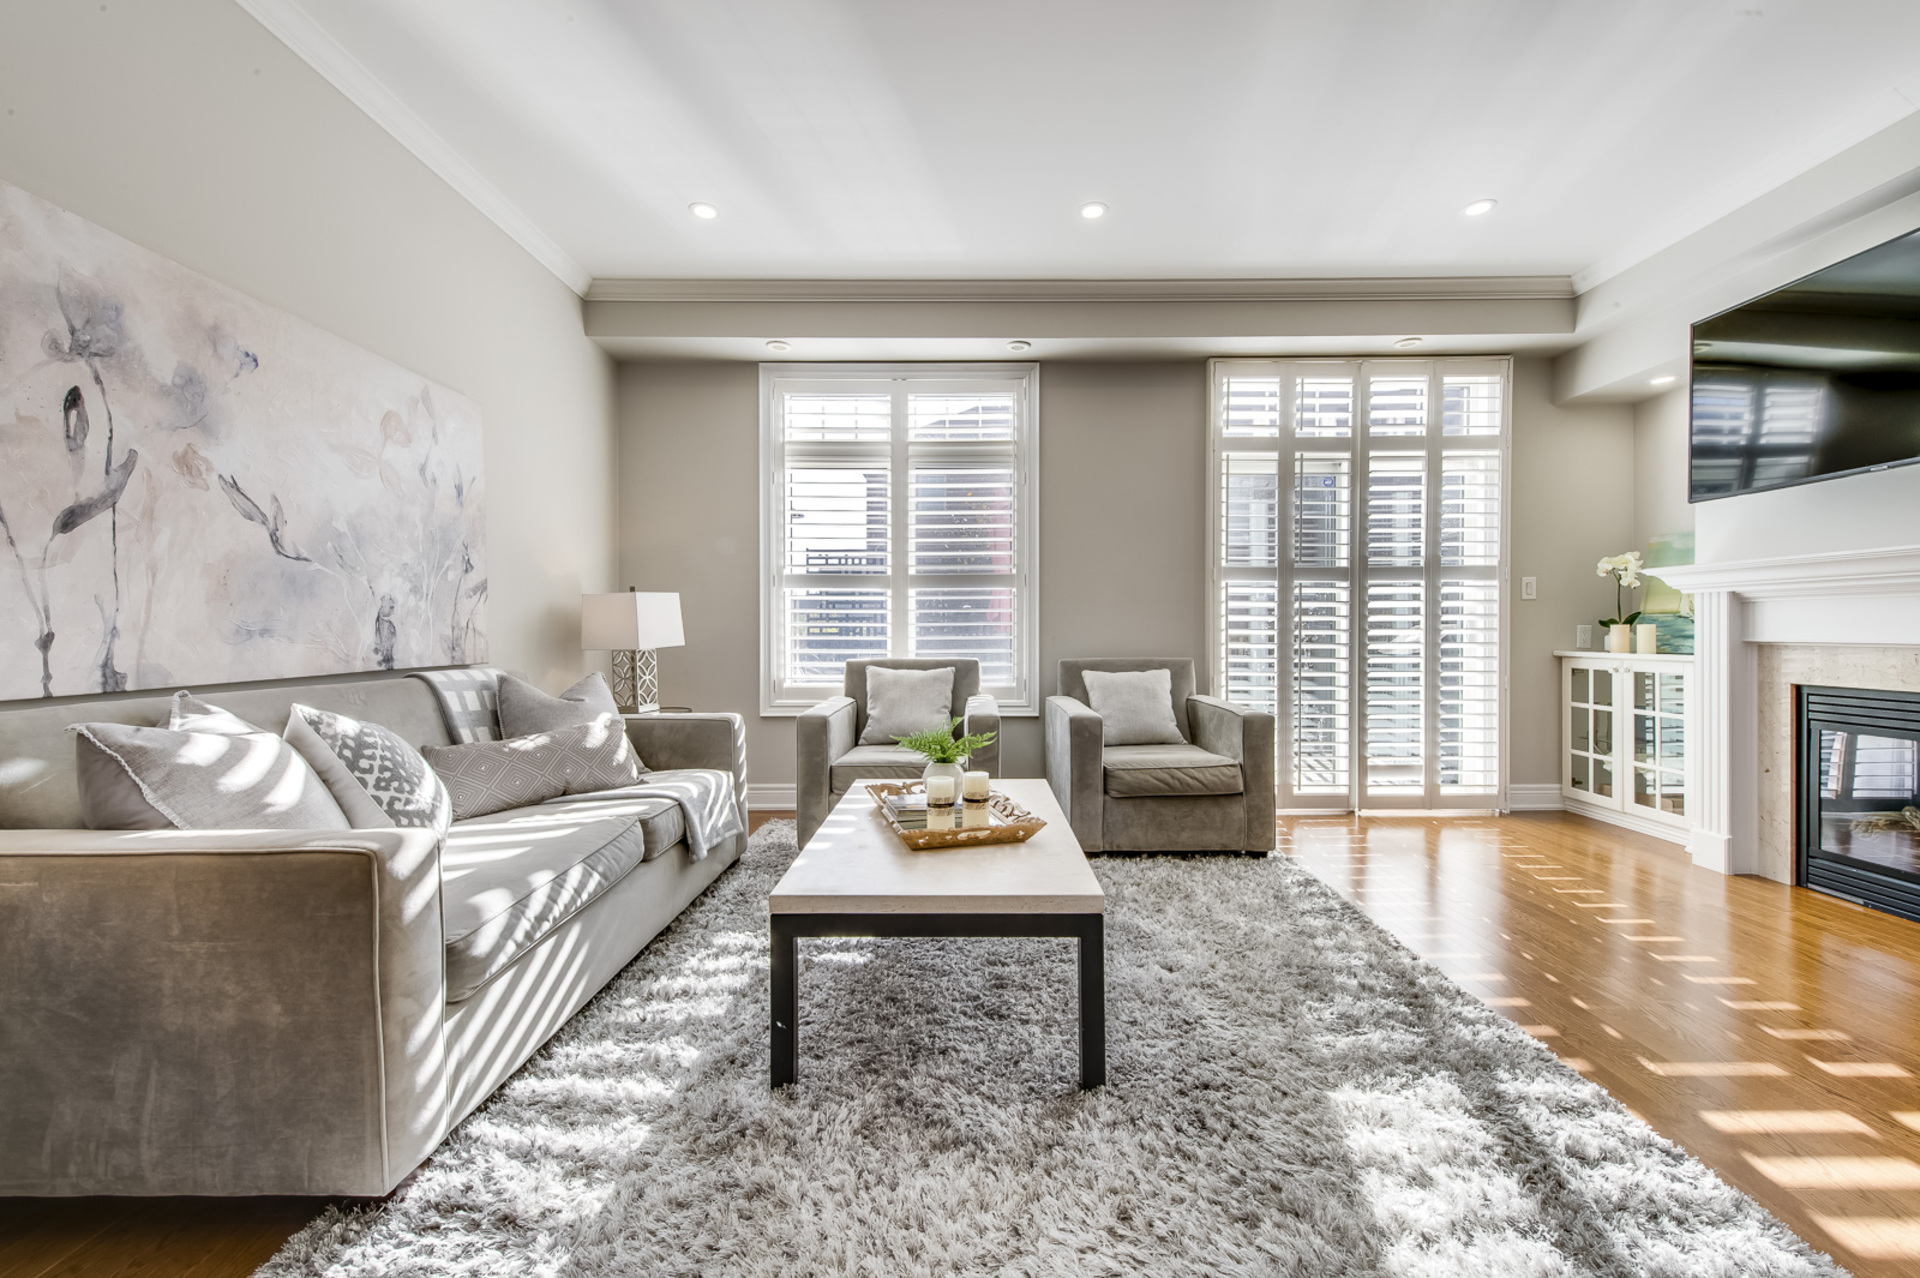 Great Room - 2014 Lushes Ave, Mississauga - Elite3 & Team at 2014 Lushes Avenue, Clarkson, Mississauga